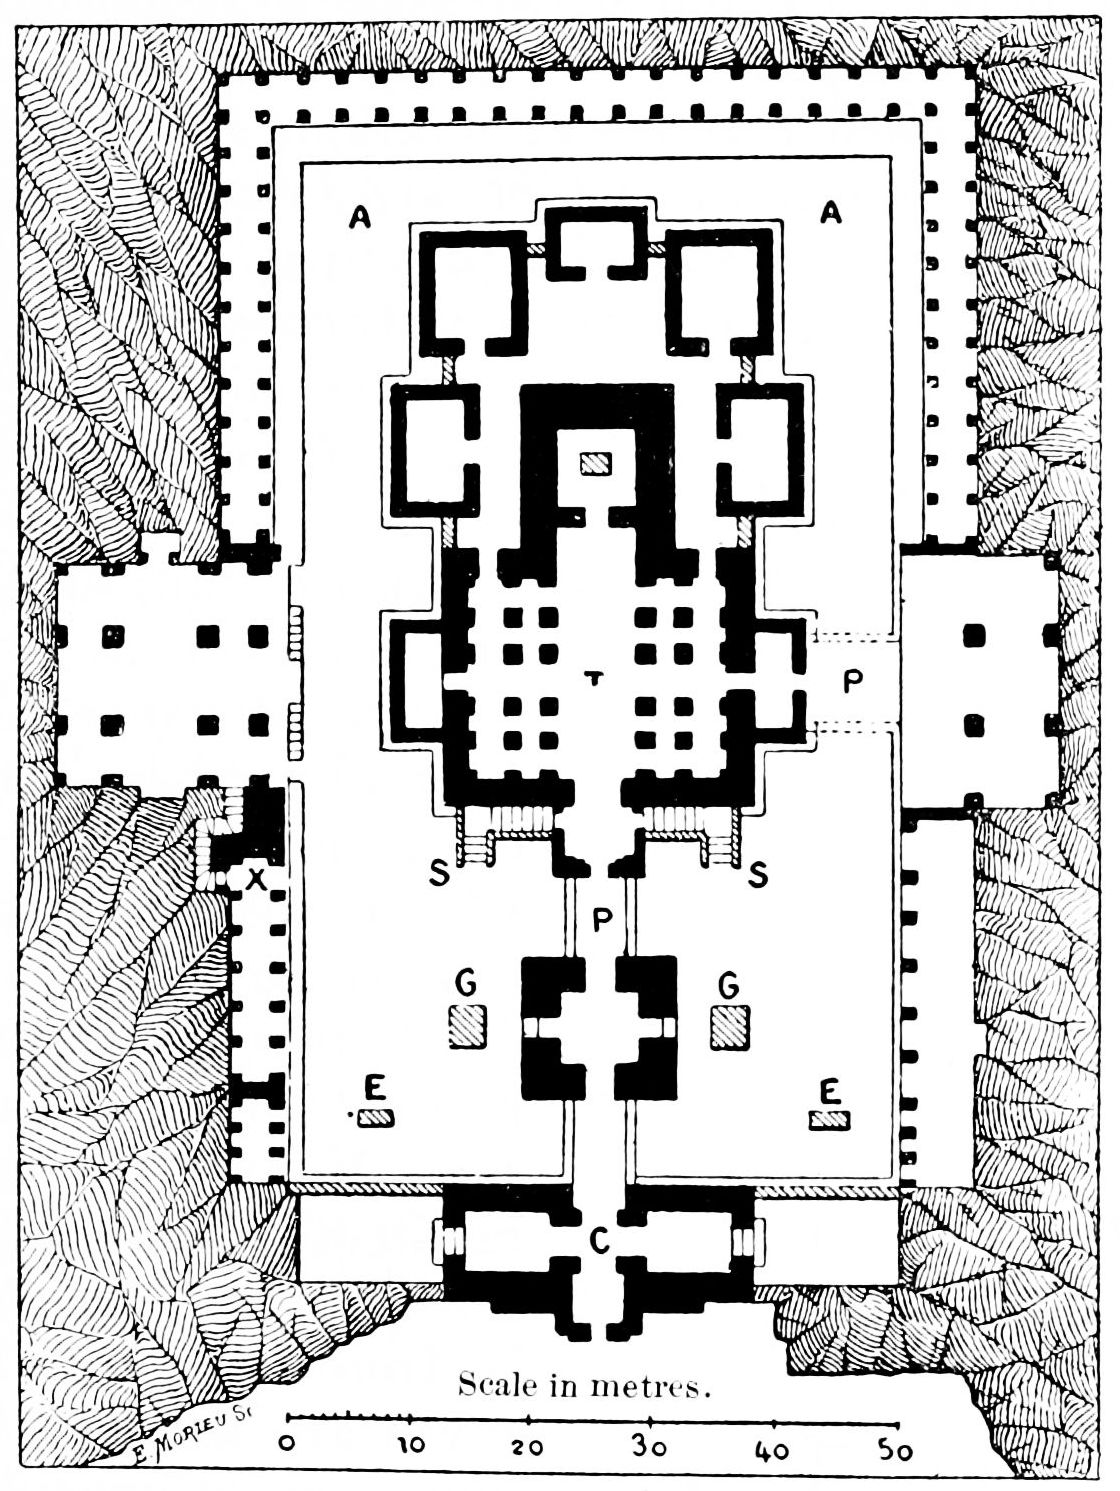 File:PSM V41 D043 Plan of the temples at kylas.jpg